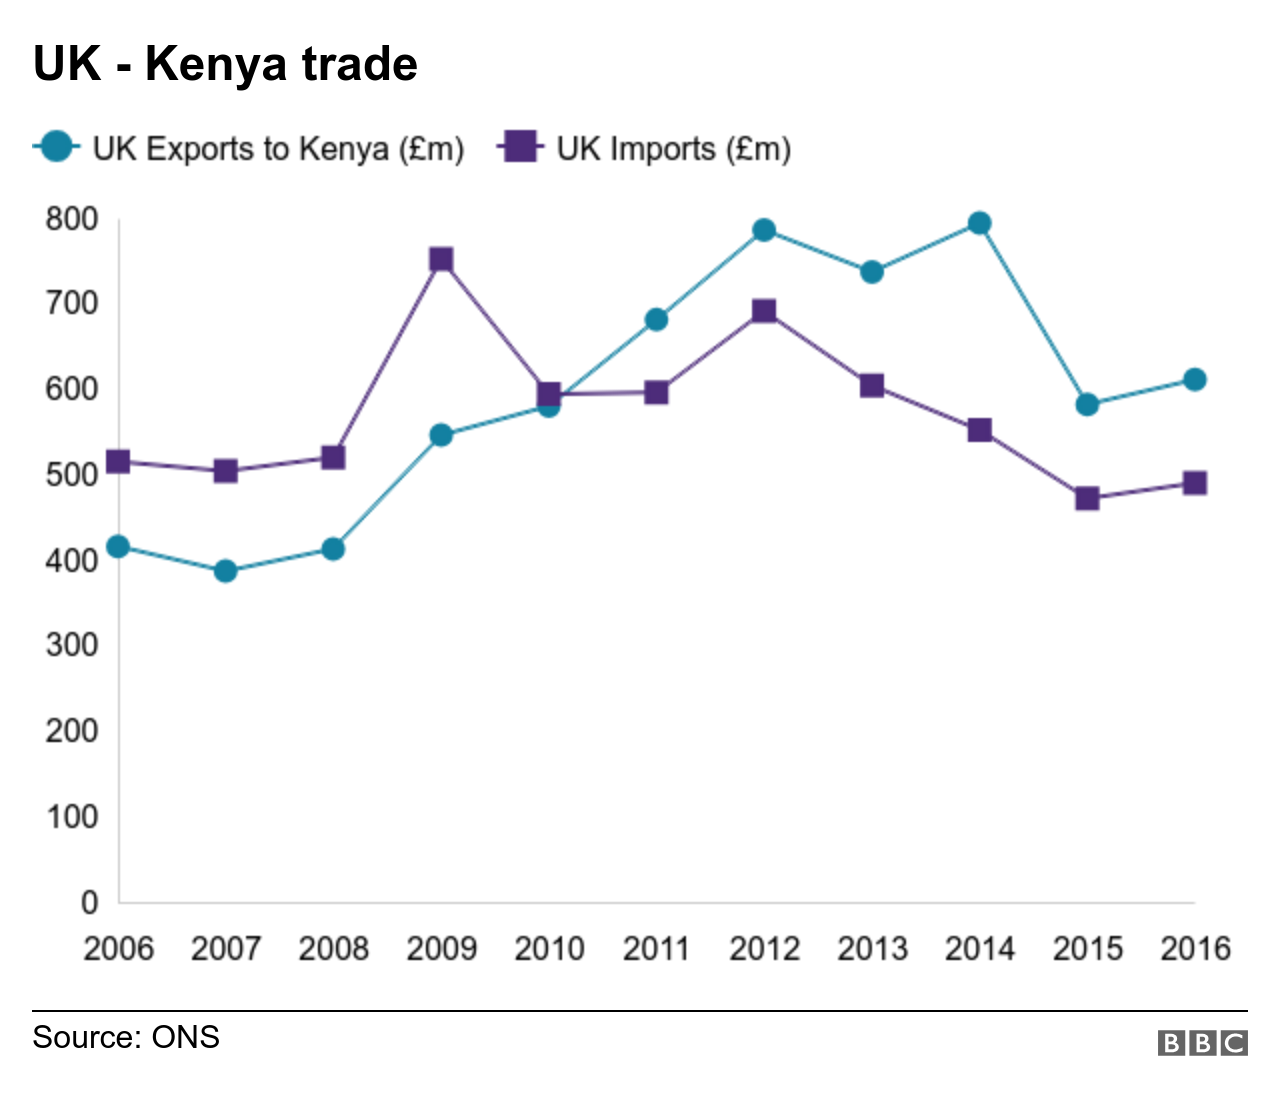 Chart shows imports and exports between Kenya and the UK, the value of which have fallen since 2012.